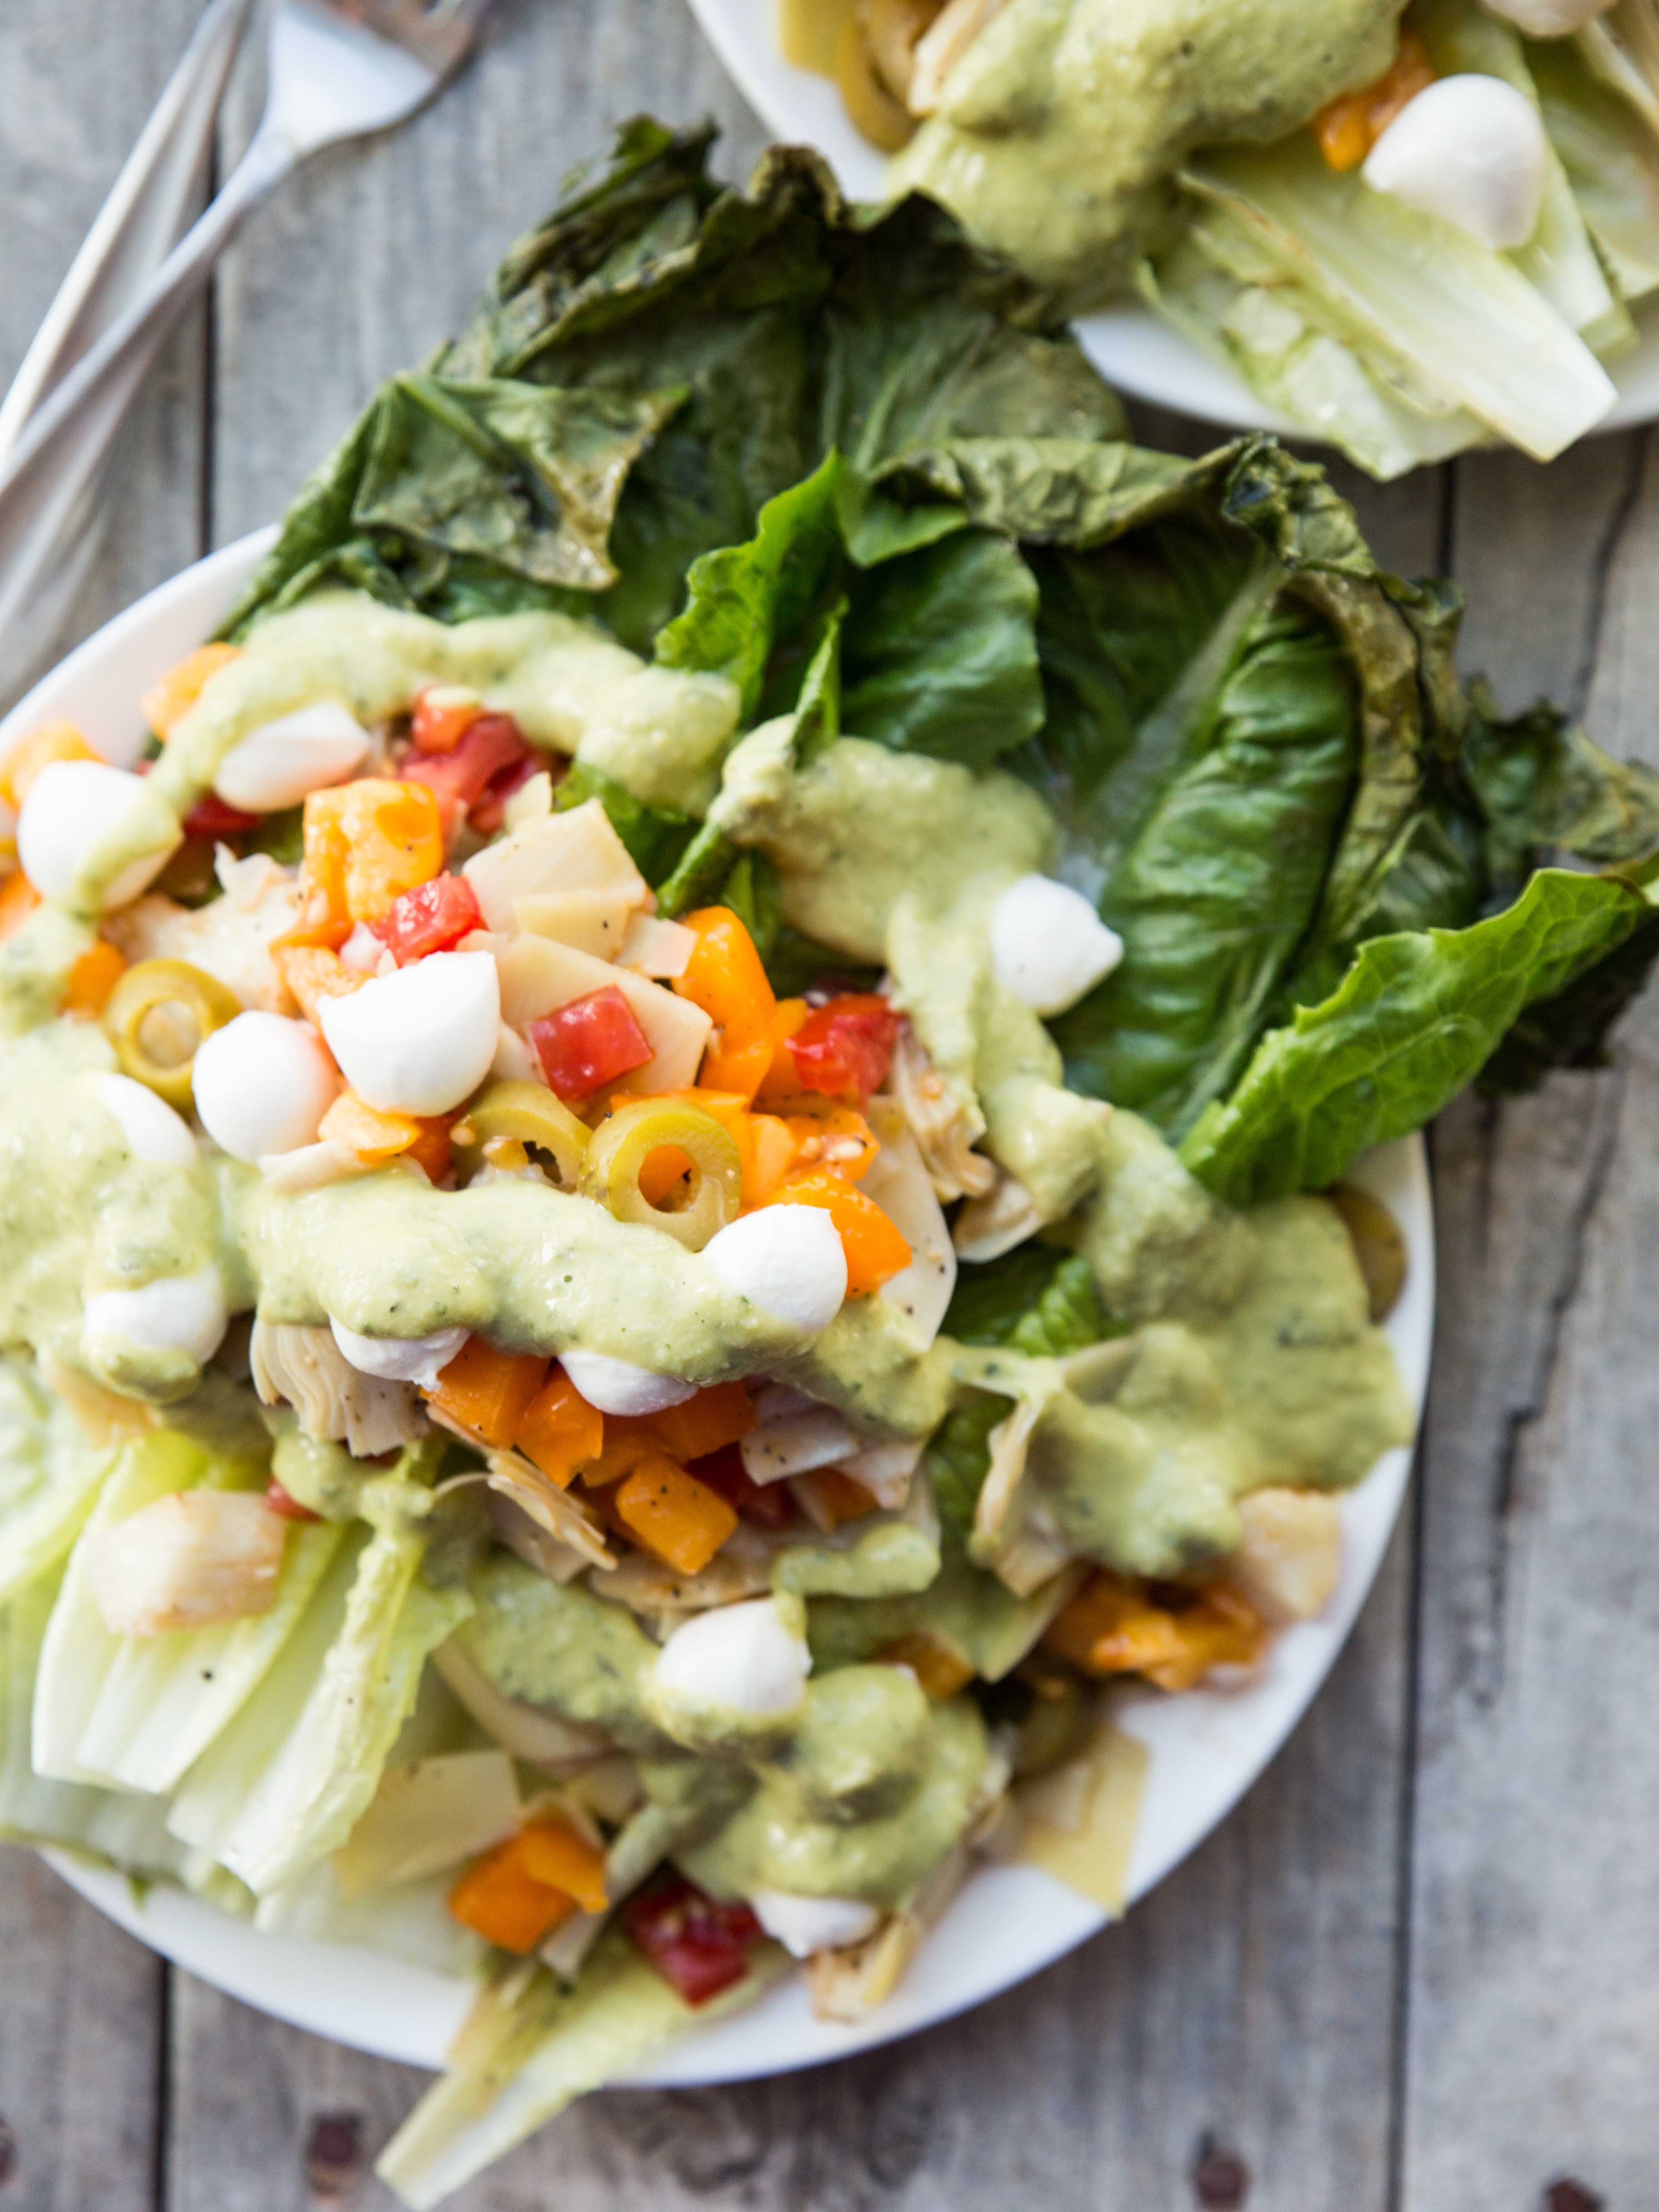 Grilled Romaine Salad with Basil Hummus Dressing